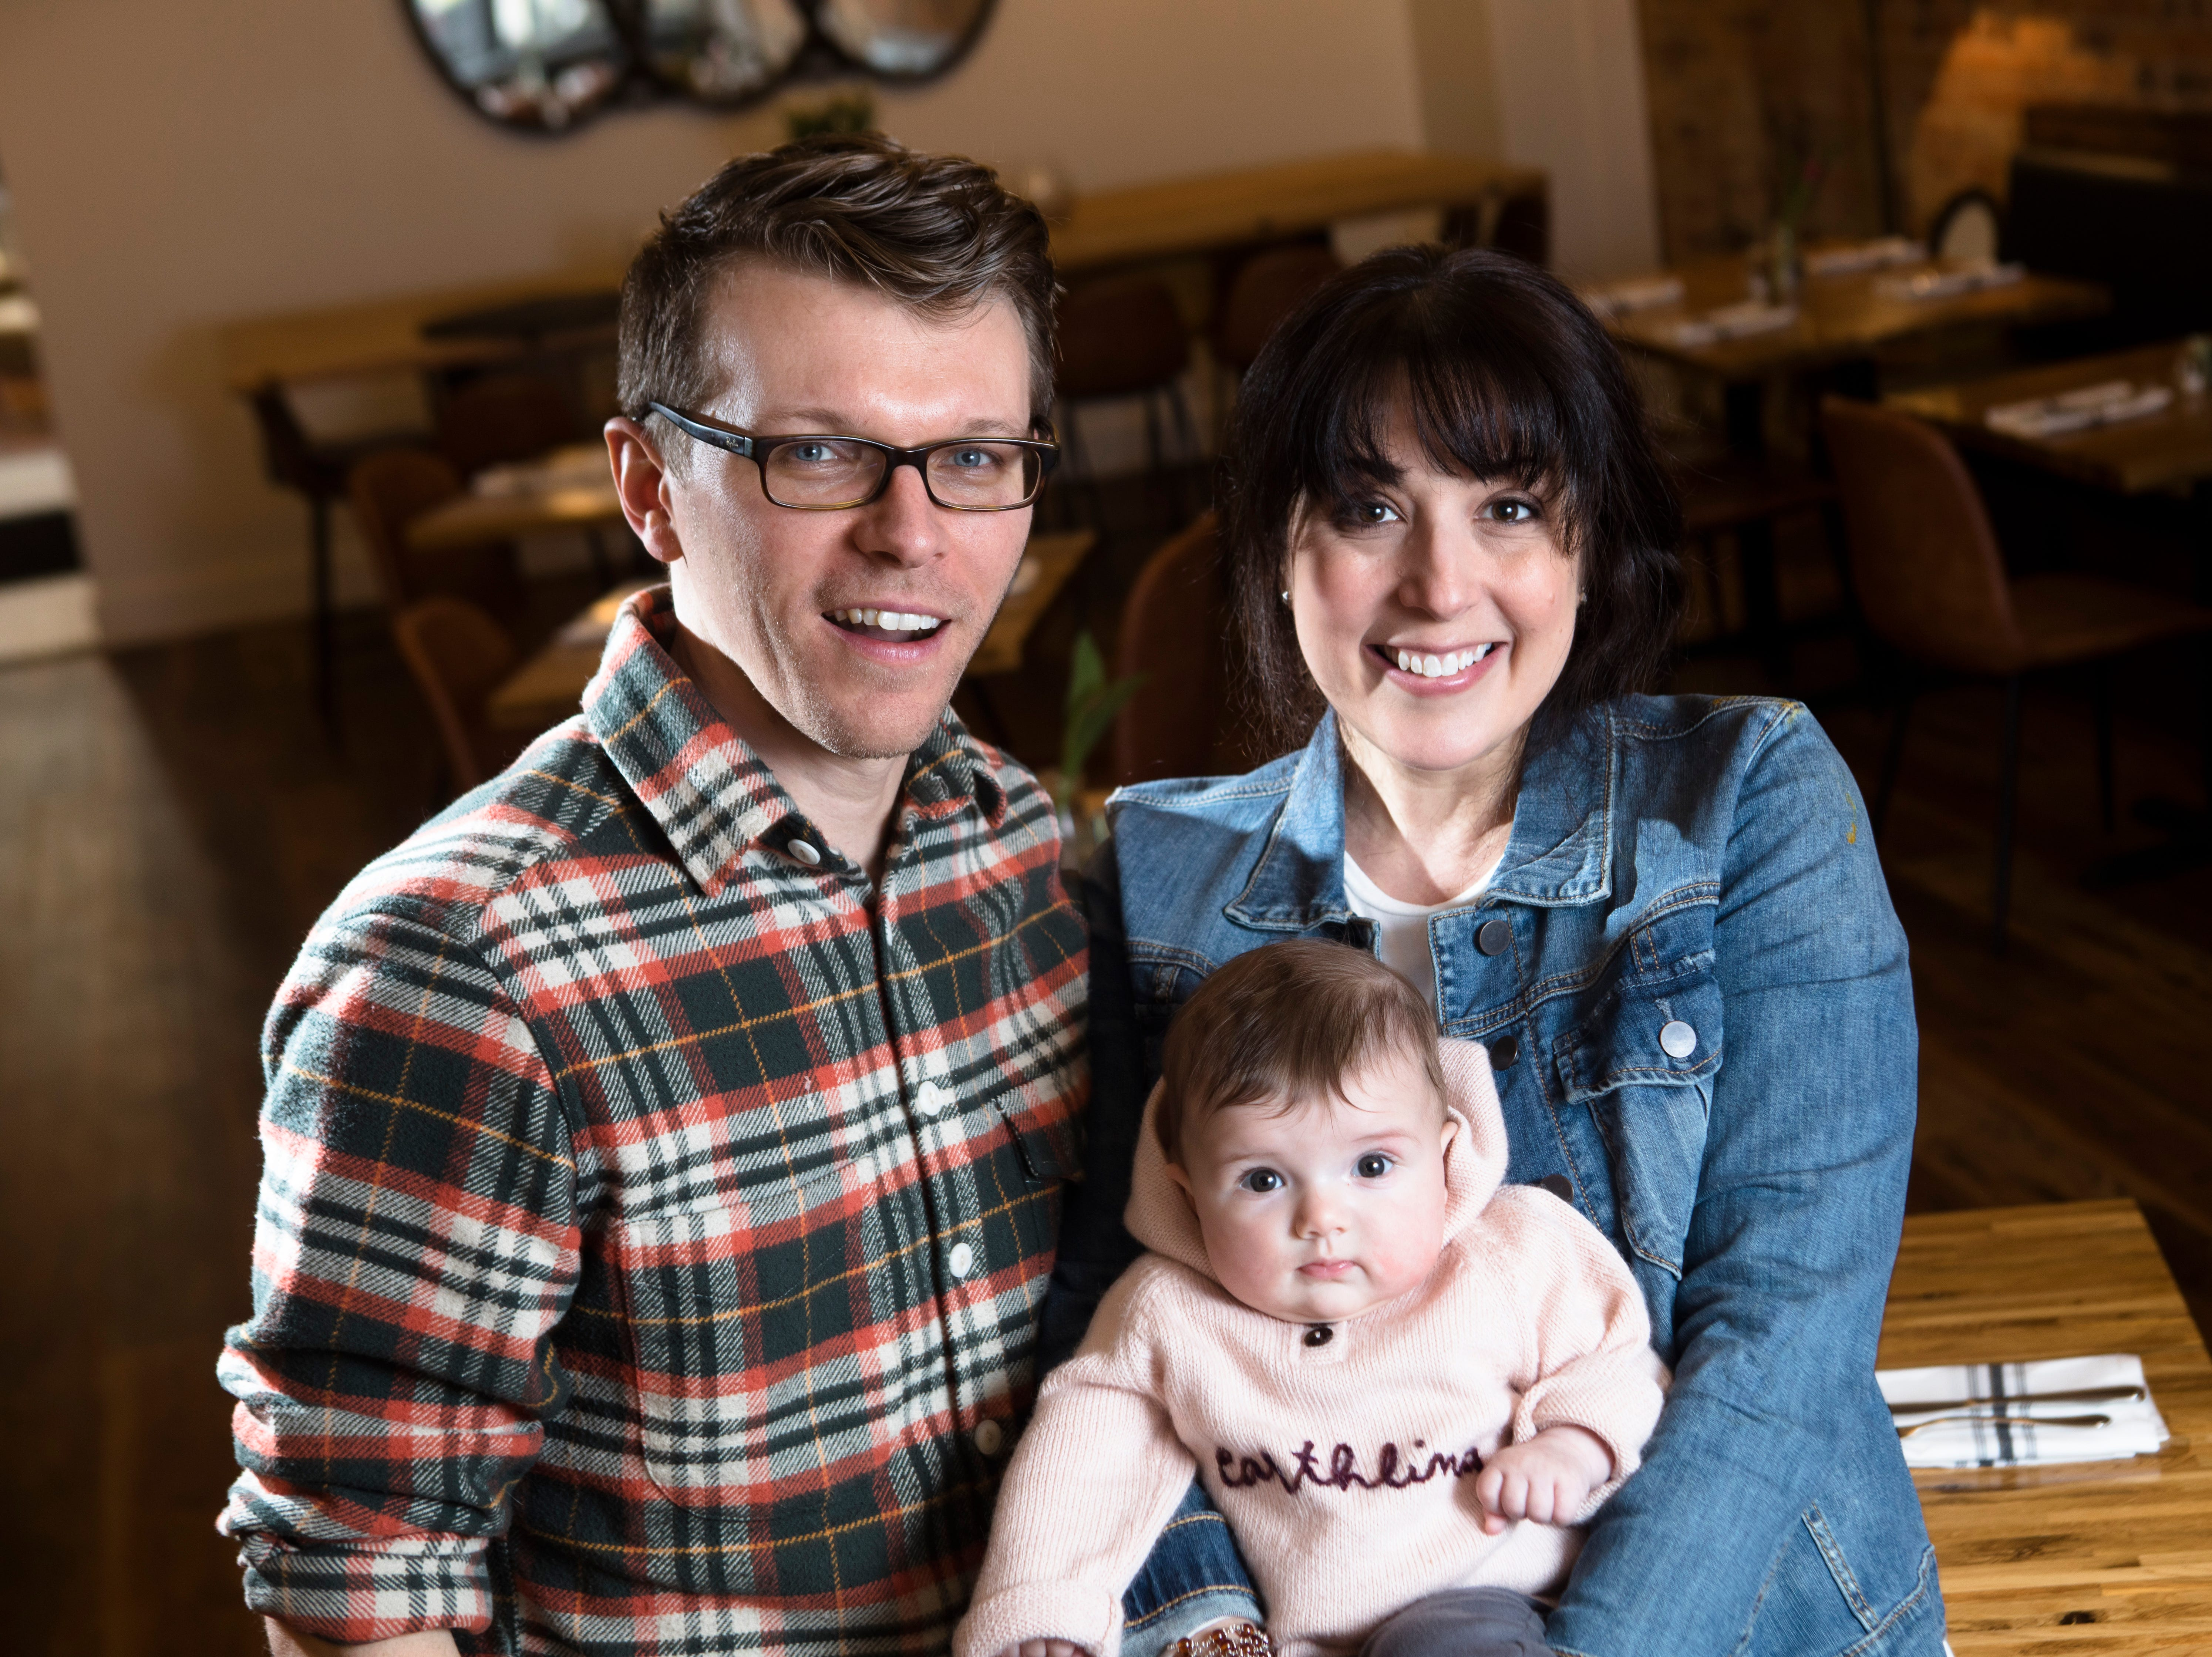 Owner of at The Bakers' Table David Willocks and Wendy Braun with their daughter, Willow Willocks at the restaurant in Newport, Ky., on Tuesday, Feb. 12, 2019.